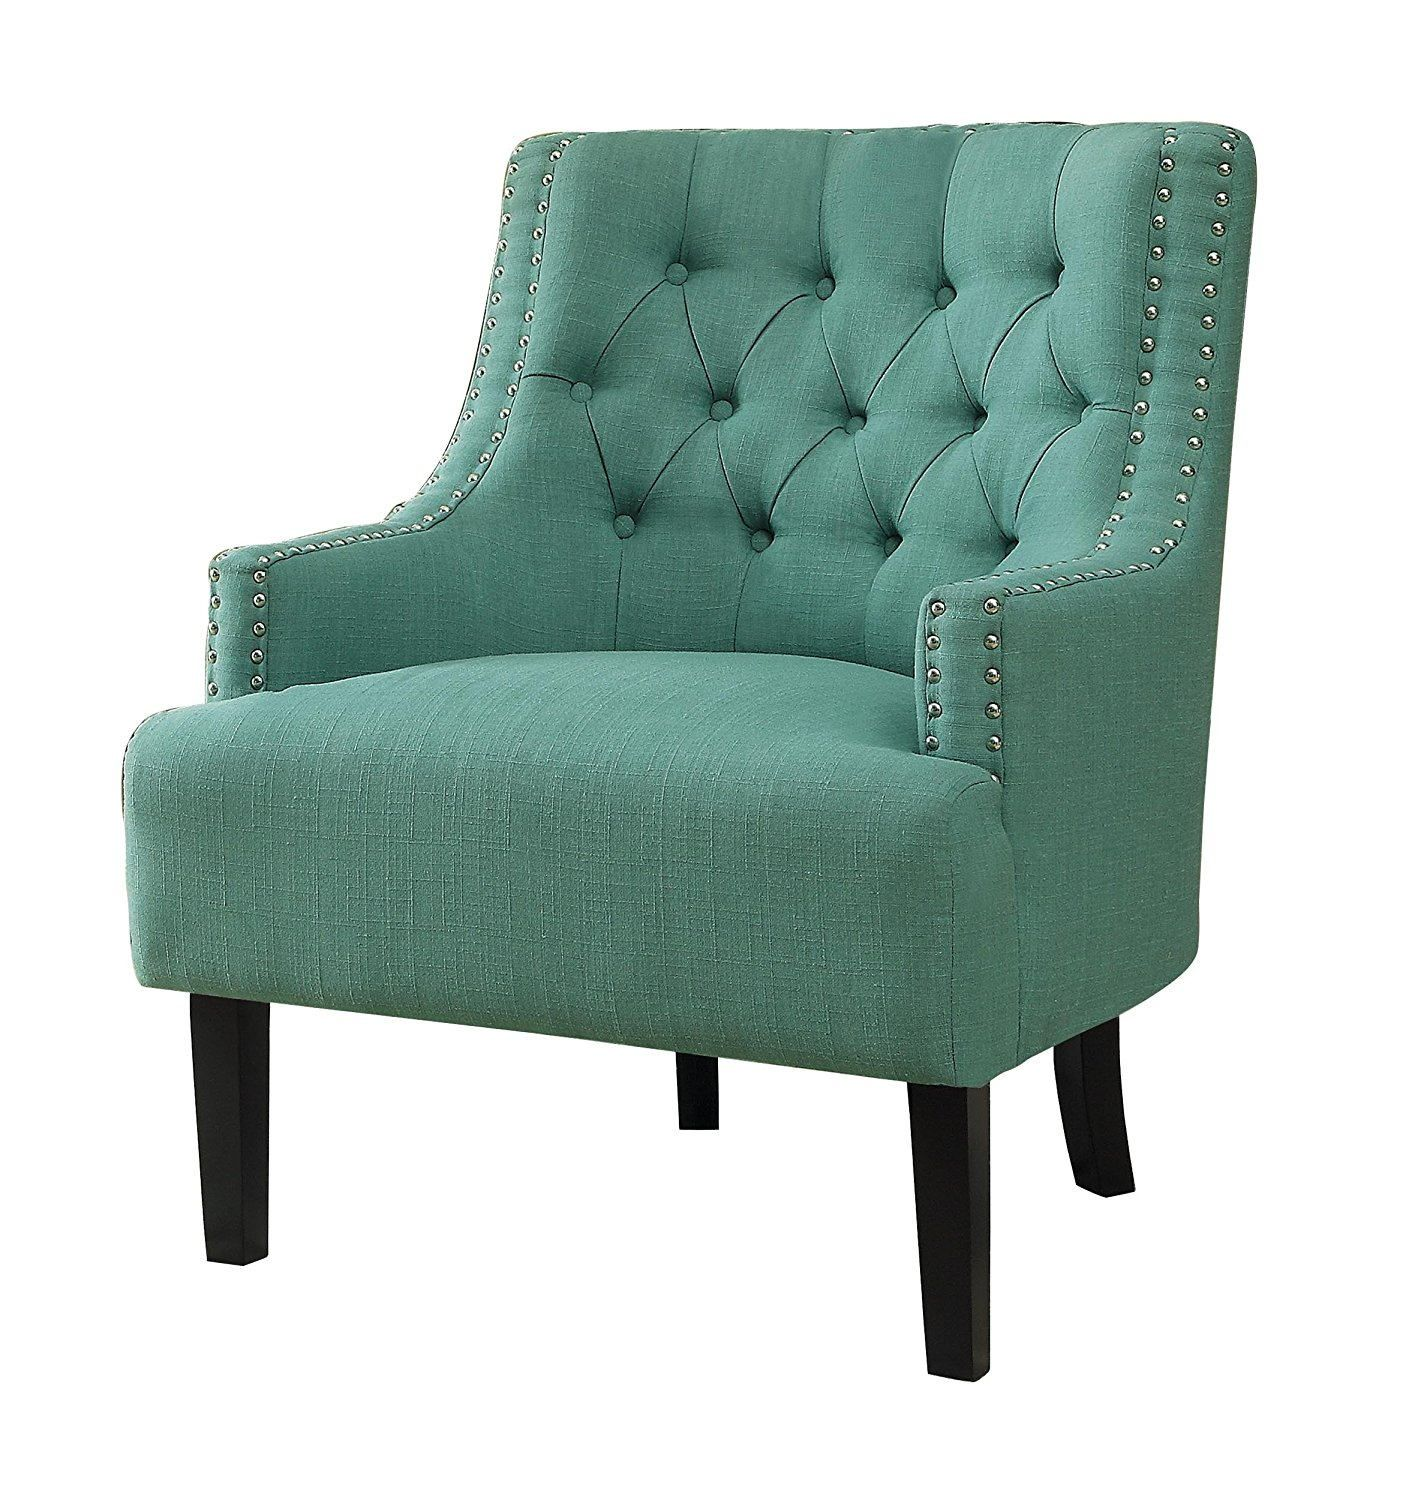 Homelegance 1194tl charisma teal fabric tufted back accent